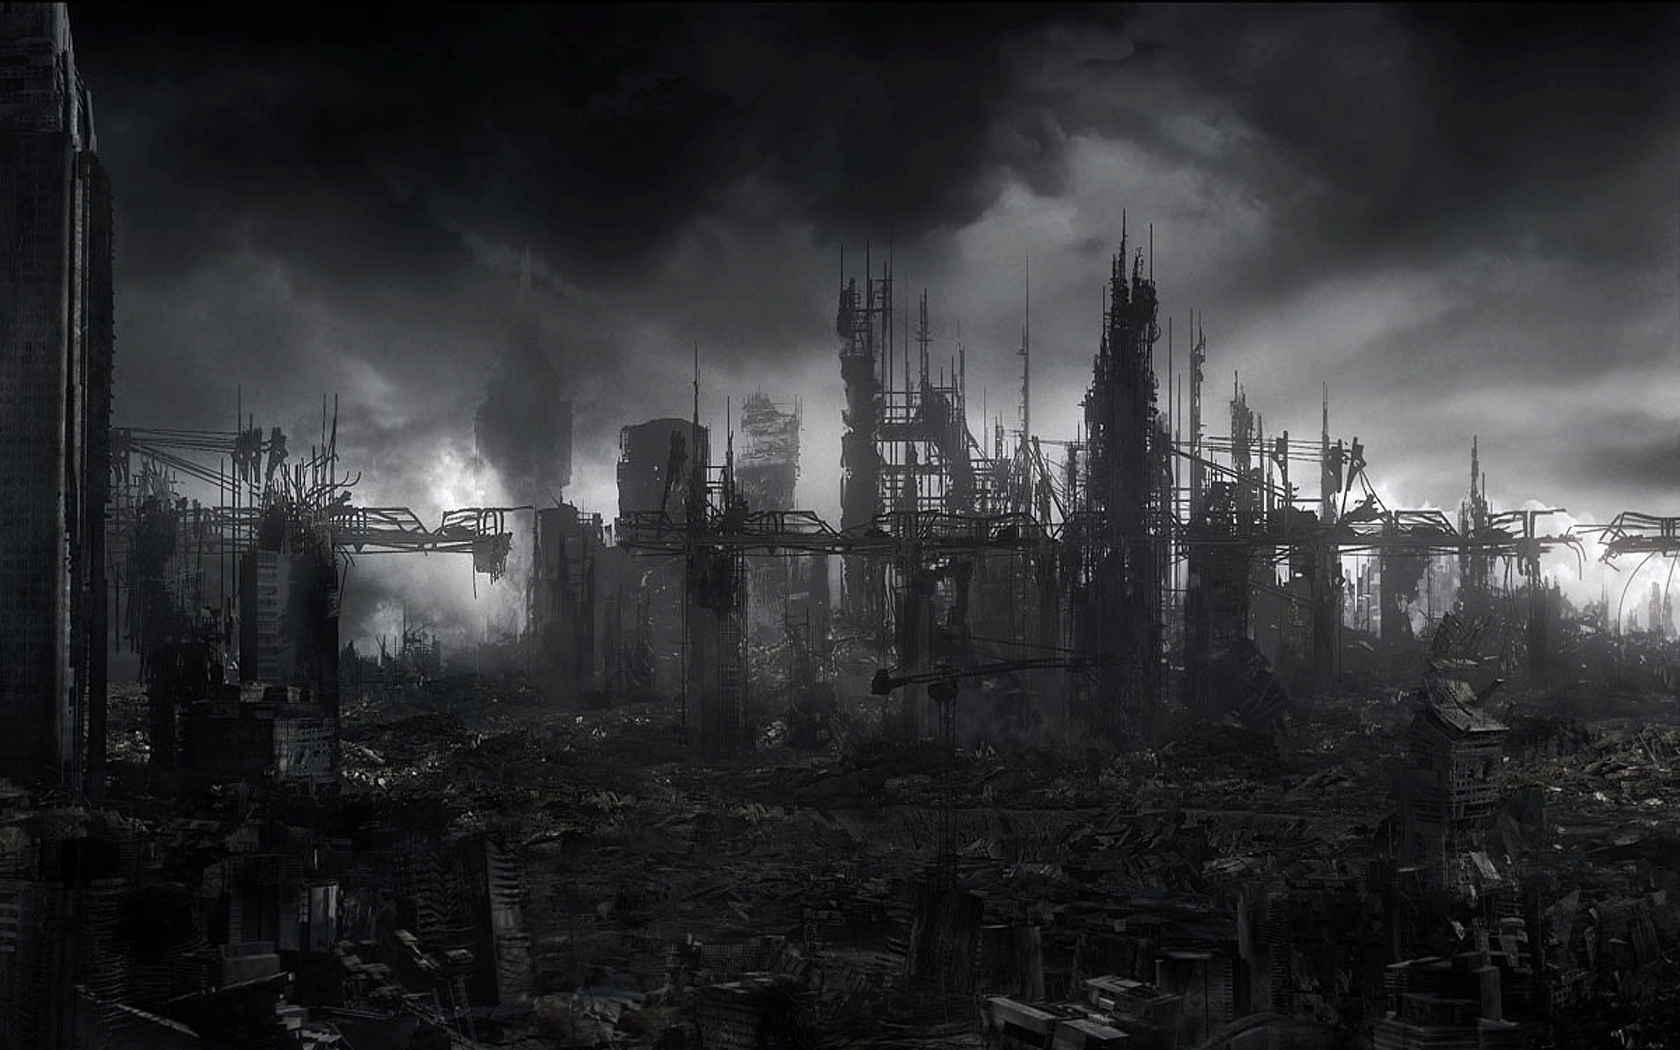 zombie apocalypse wallpaper - Google Search   After the ...